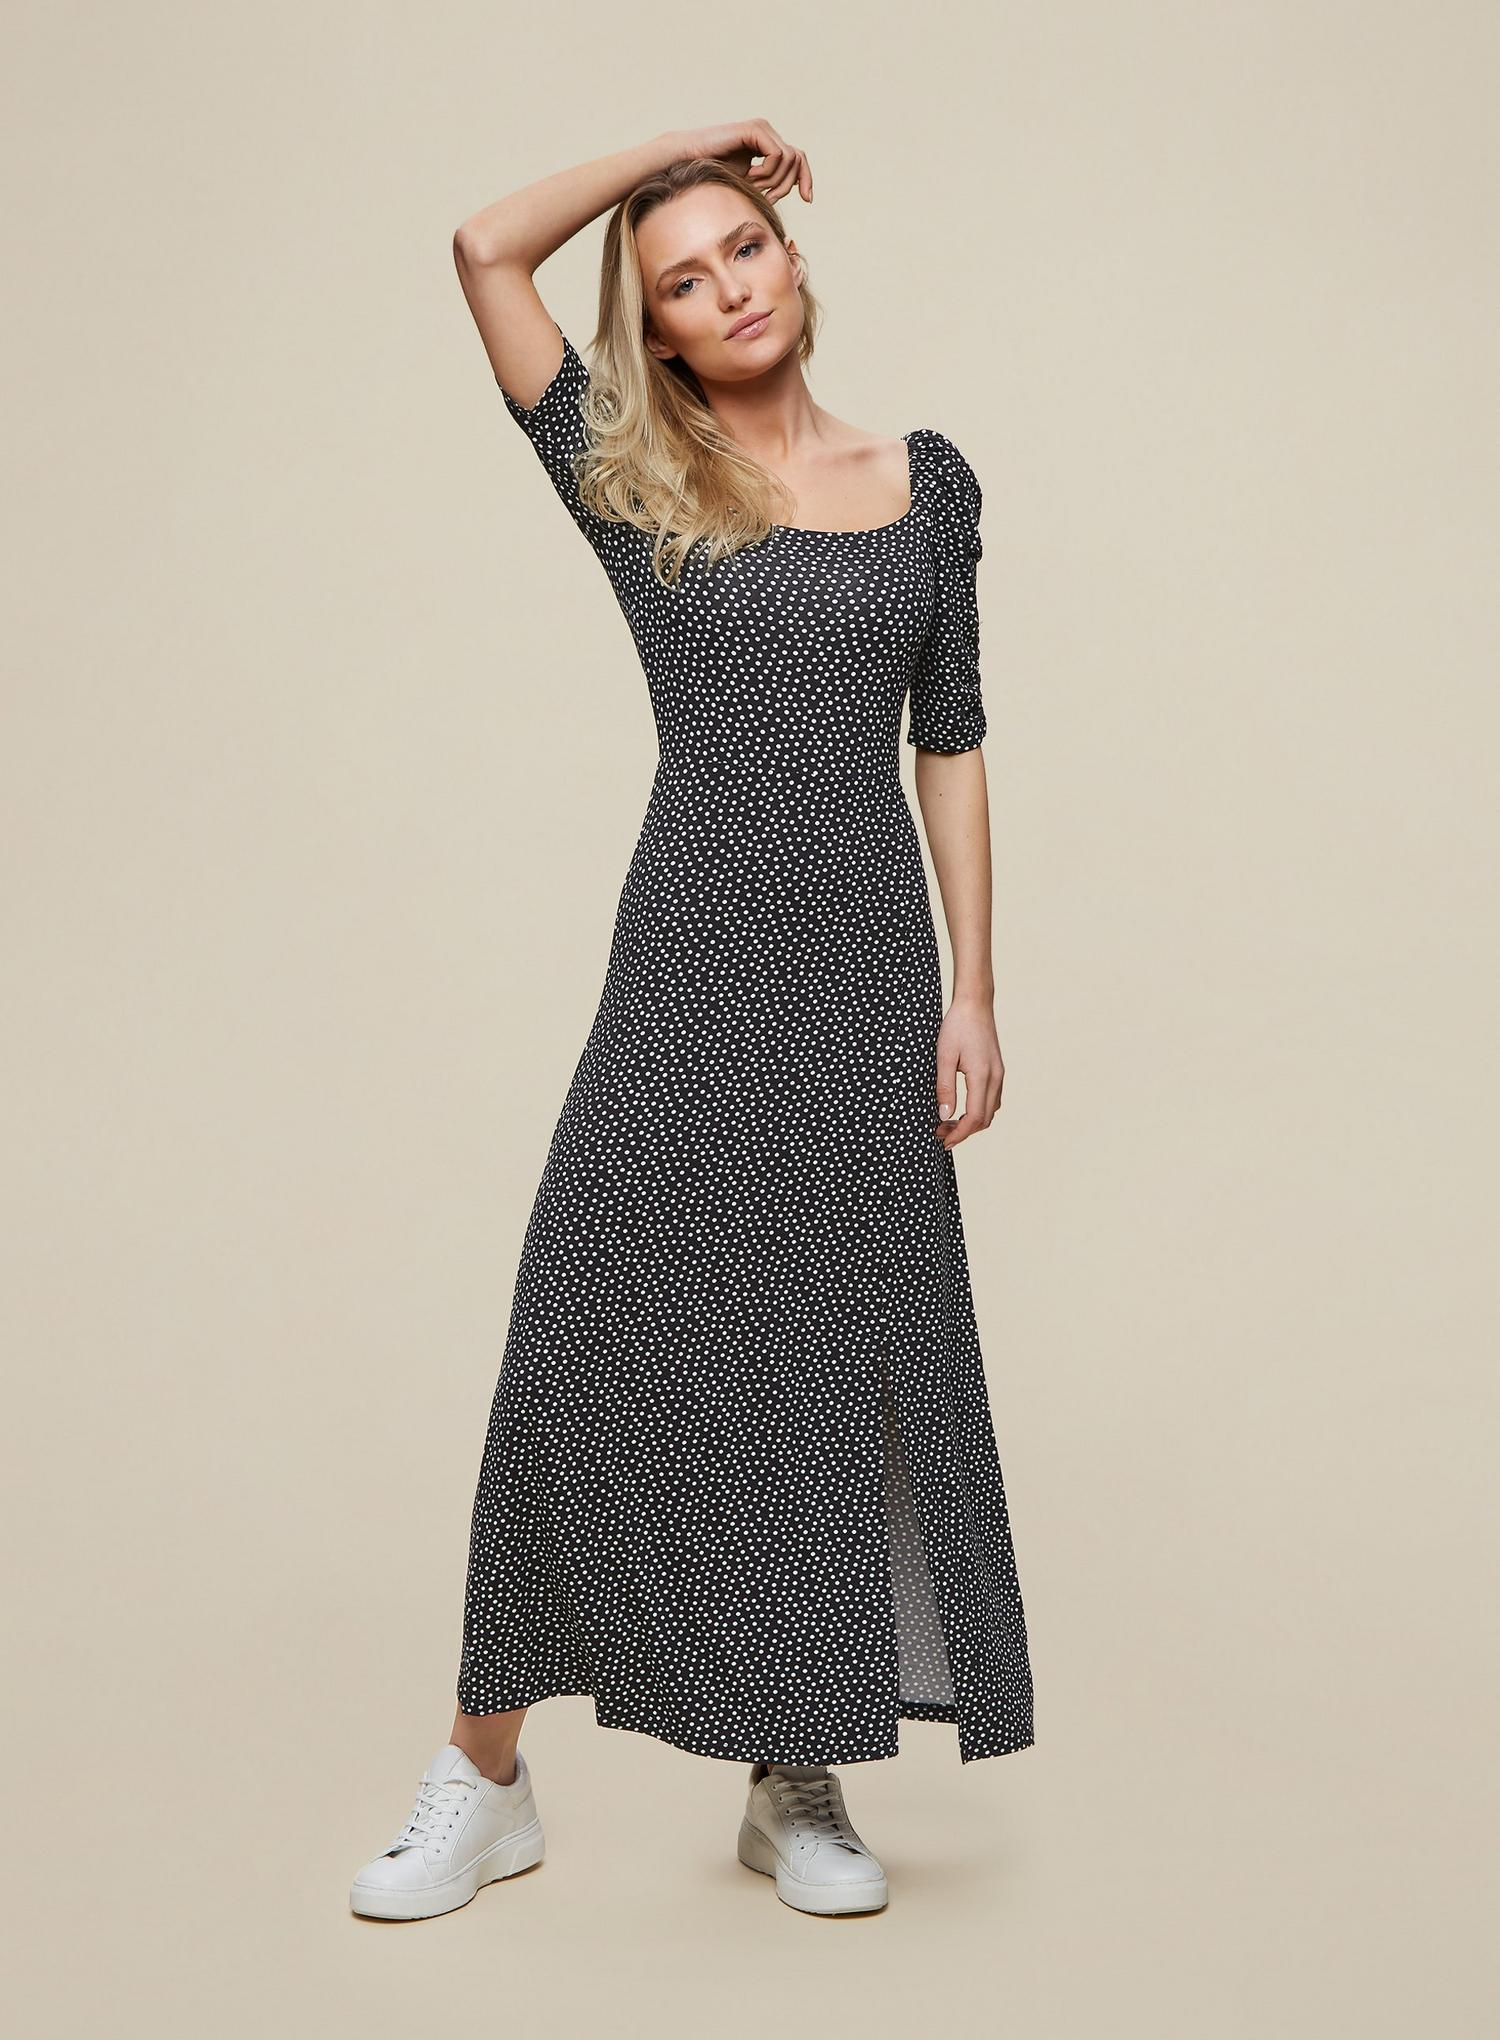 105 Black Spot Print Midi Dress image number 1